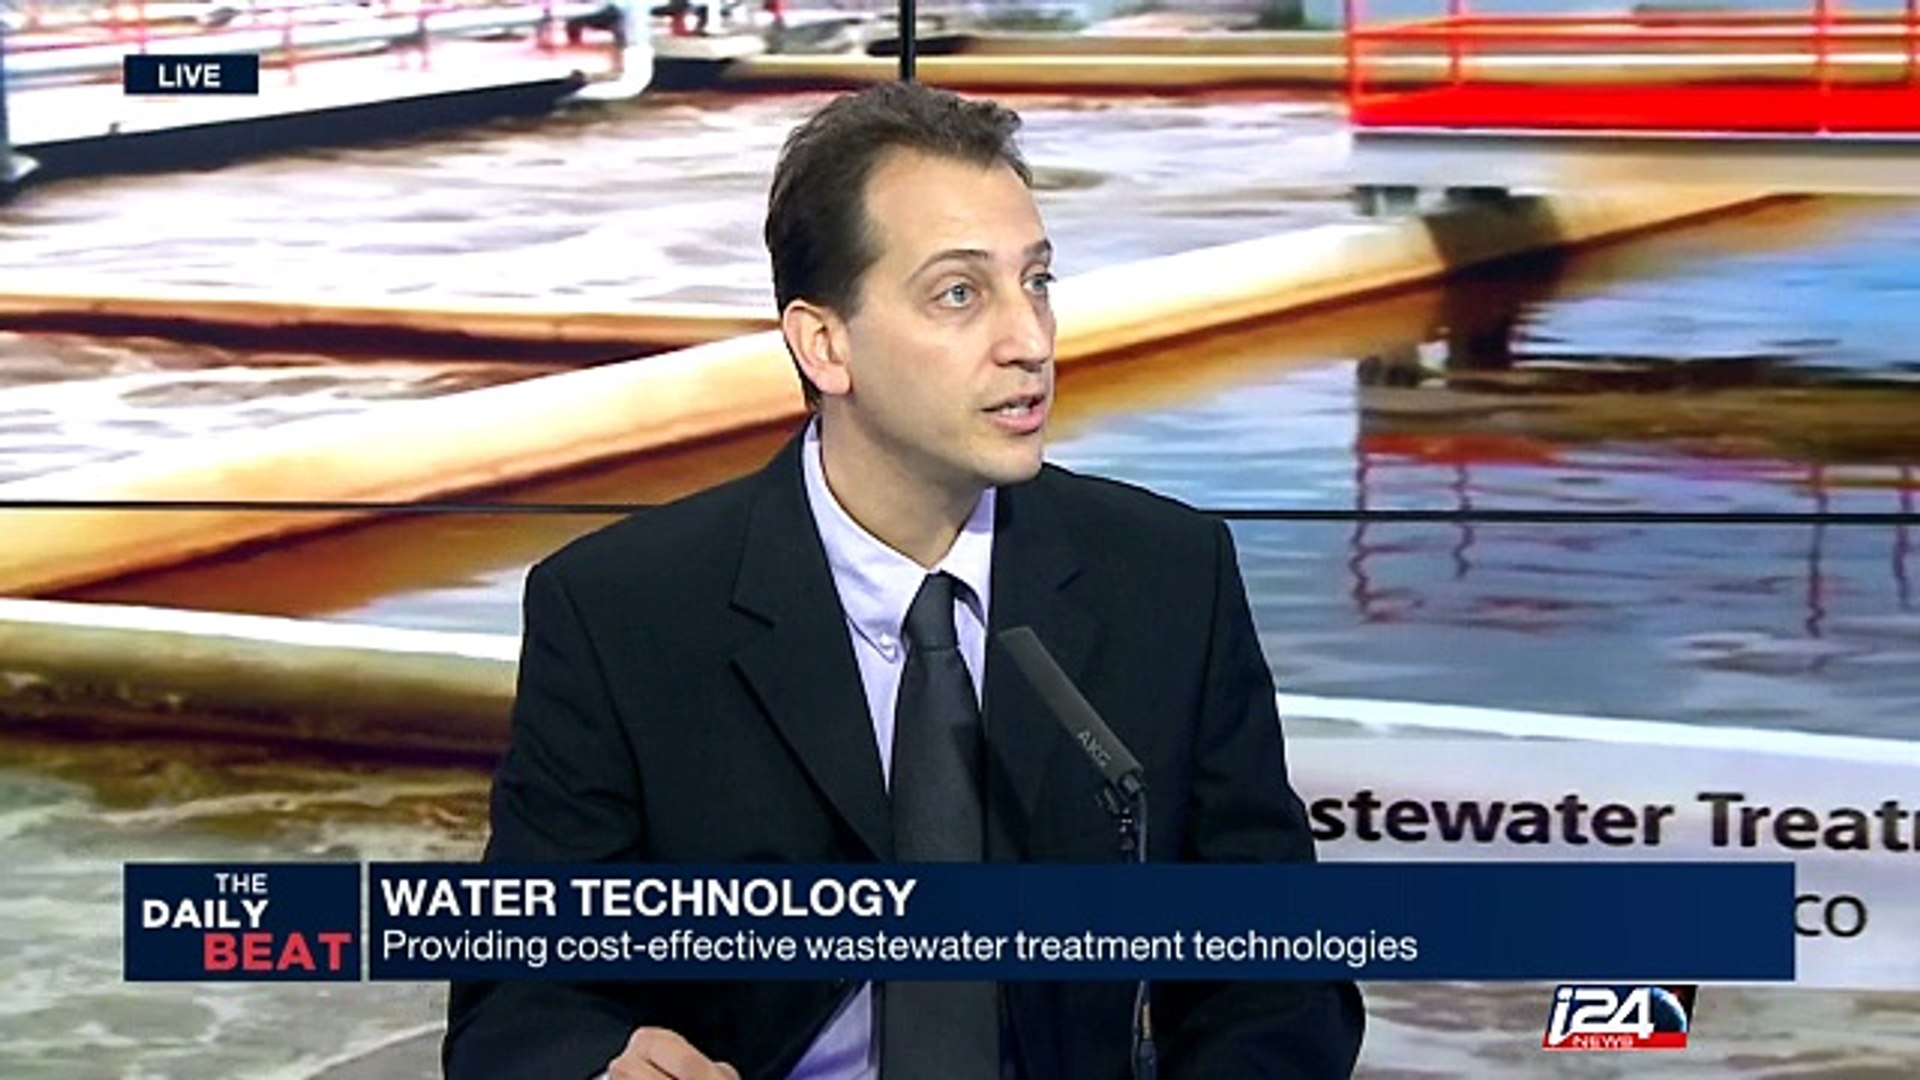 Water technology: providing cost-effective wastewater treatment technologies